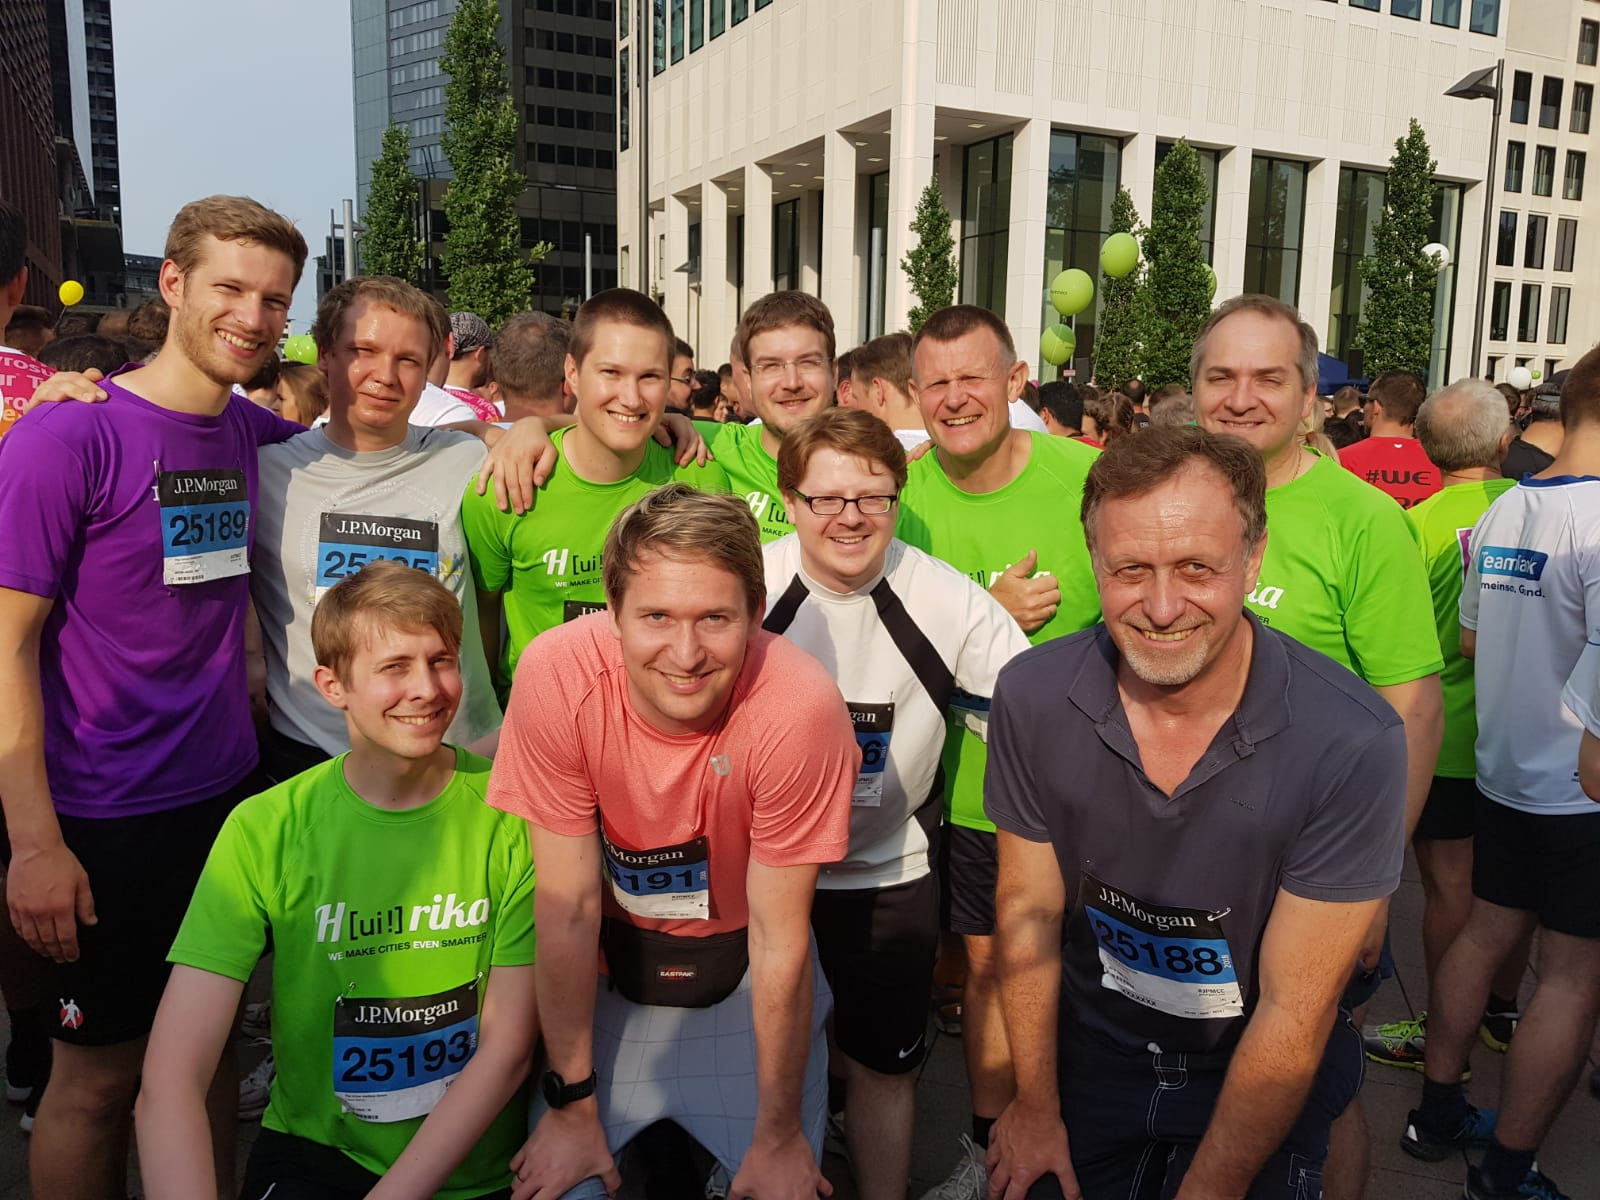 JPMorgan Lauf in Frankfurt - Team [ui!]